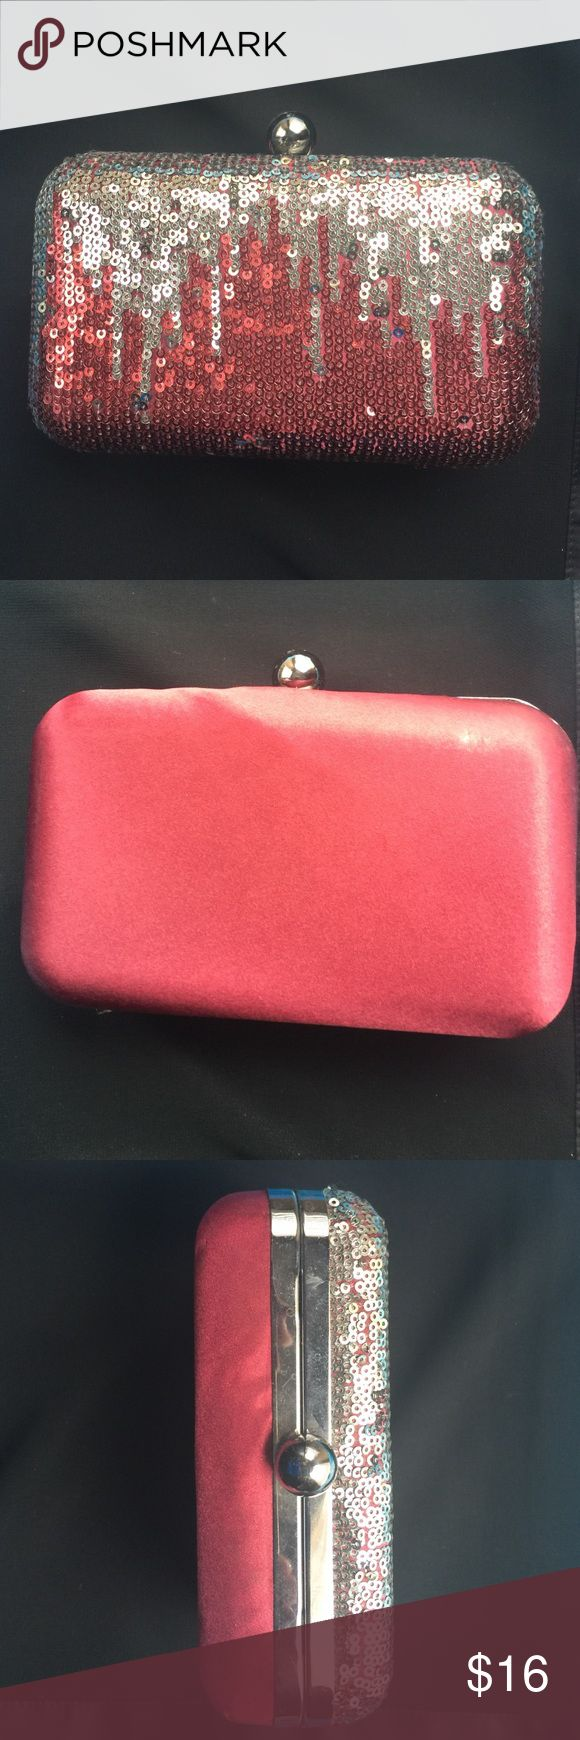 Christopher Straub silver/burgundy formal clutch New with tags, hard shell small clutch, great for formalwear and the holidays. Christopher Straub Bags Clutches & Wristlets